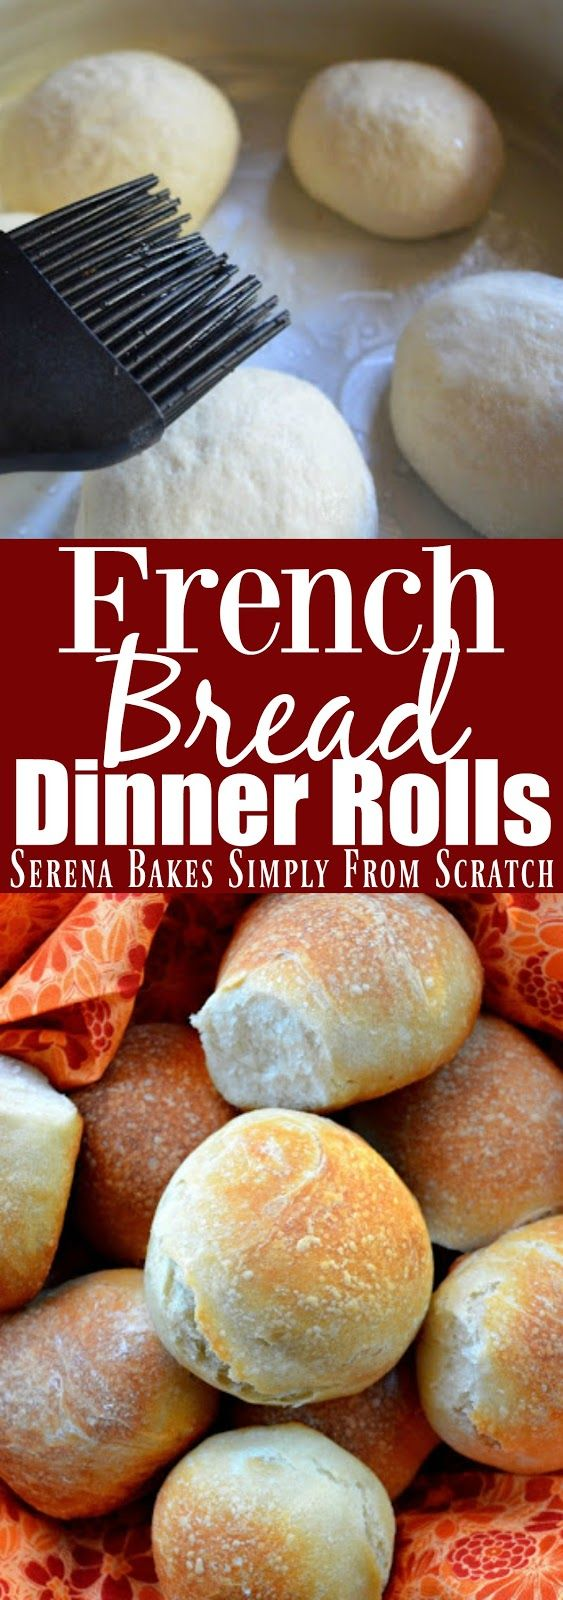 Crusty soft chewy French Bread Dinner Roll recipe from Serena Bakes Simply From Scratch.